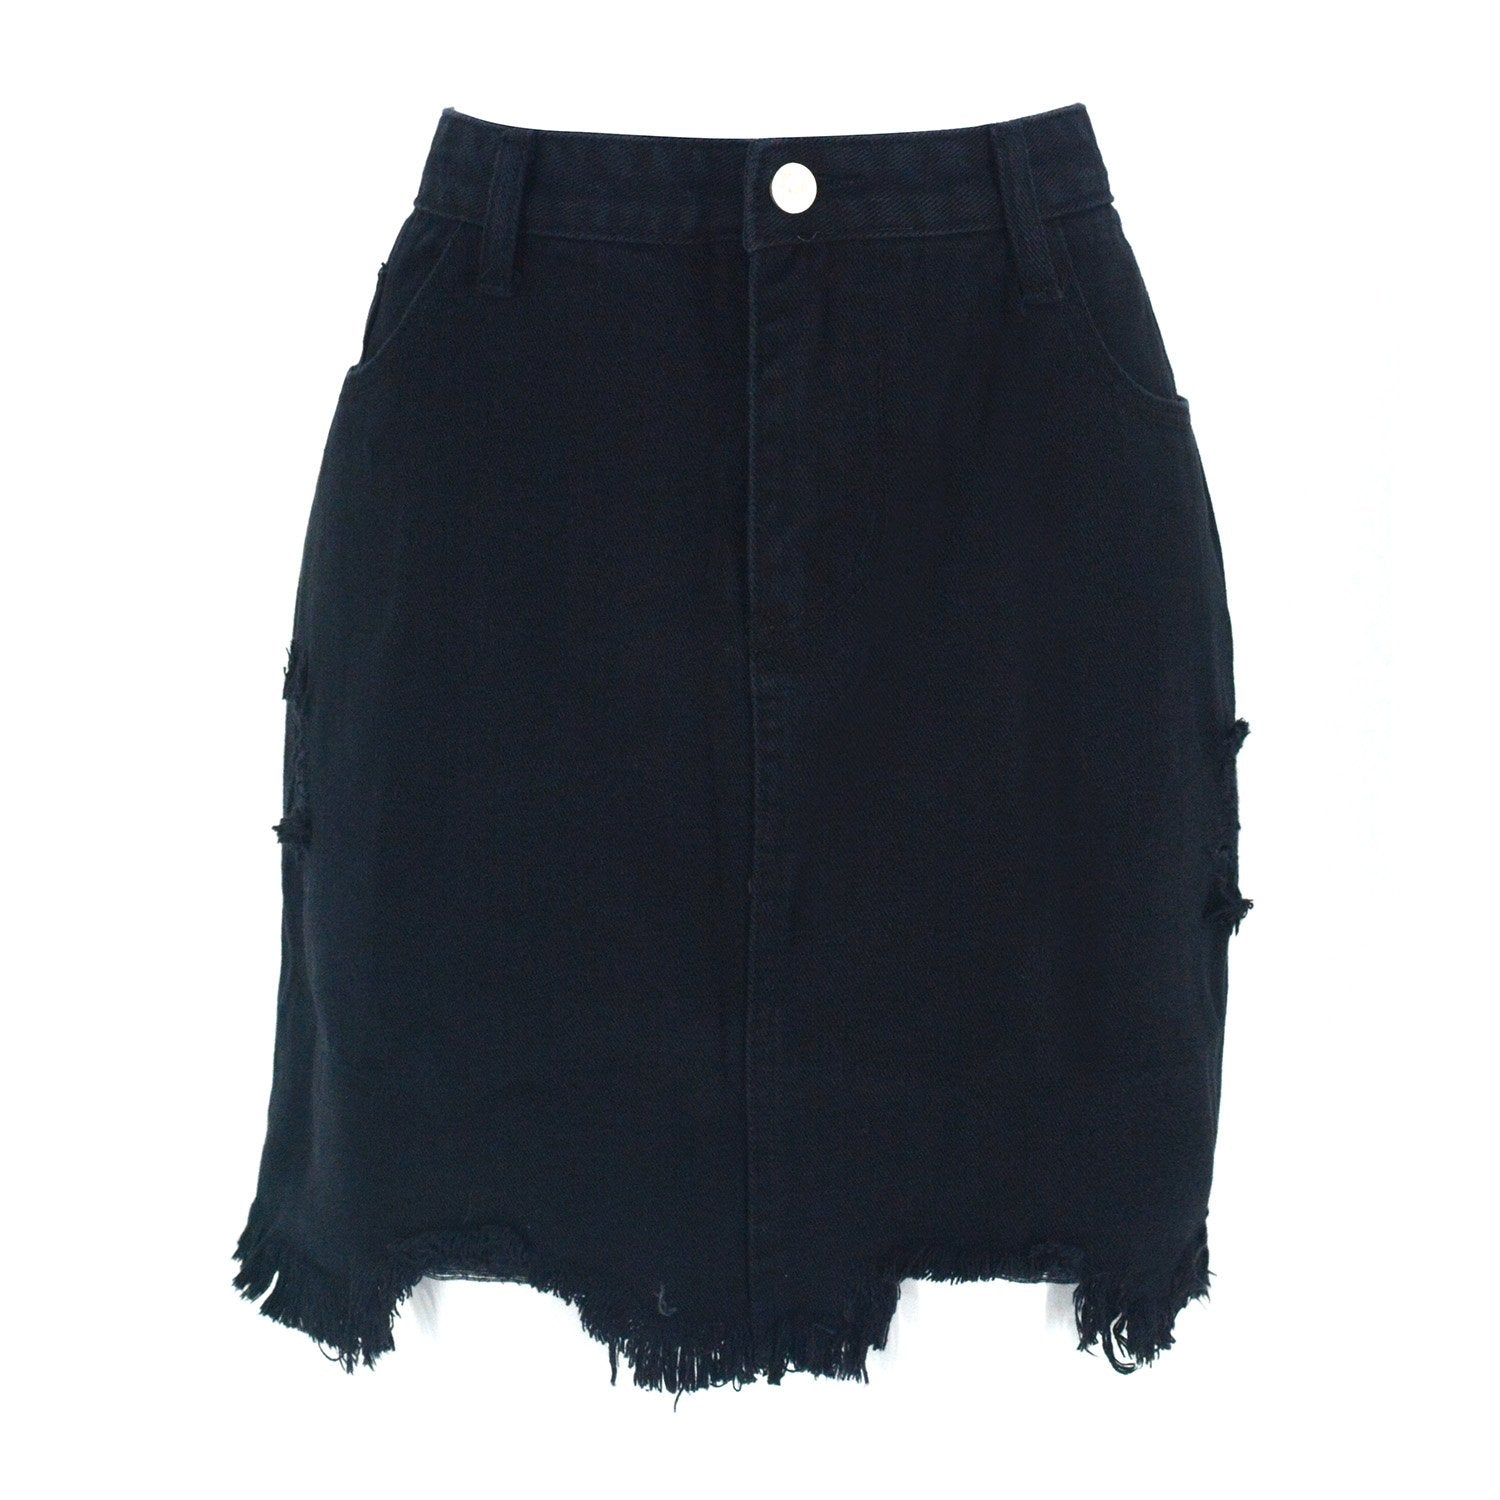 Casual High Waist Ripped A-Line Mini Short Denim Skirt